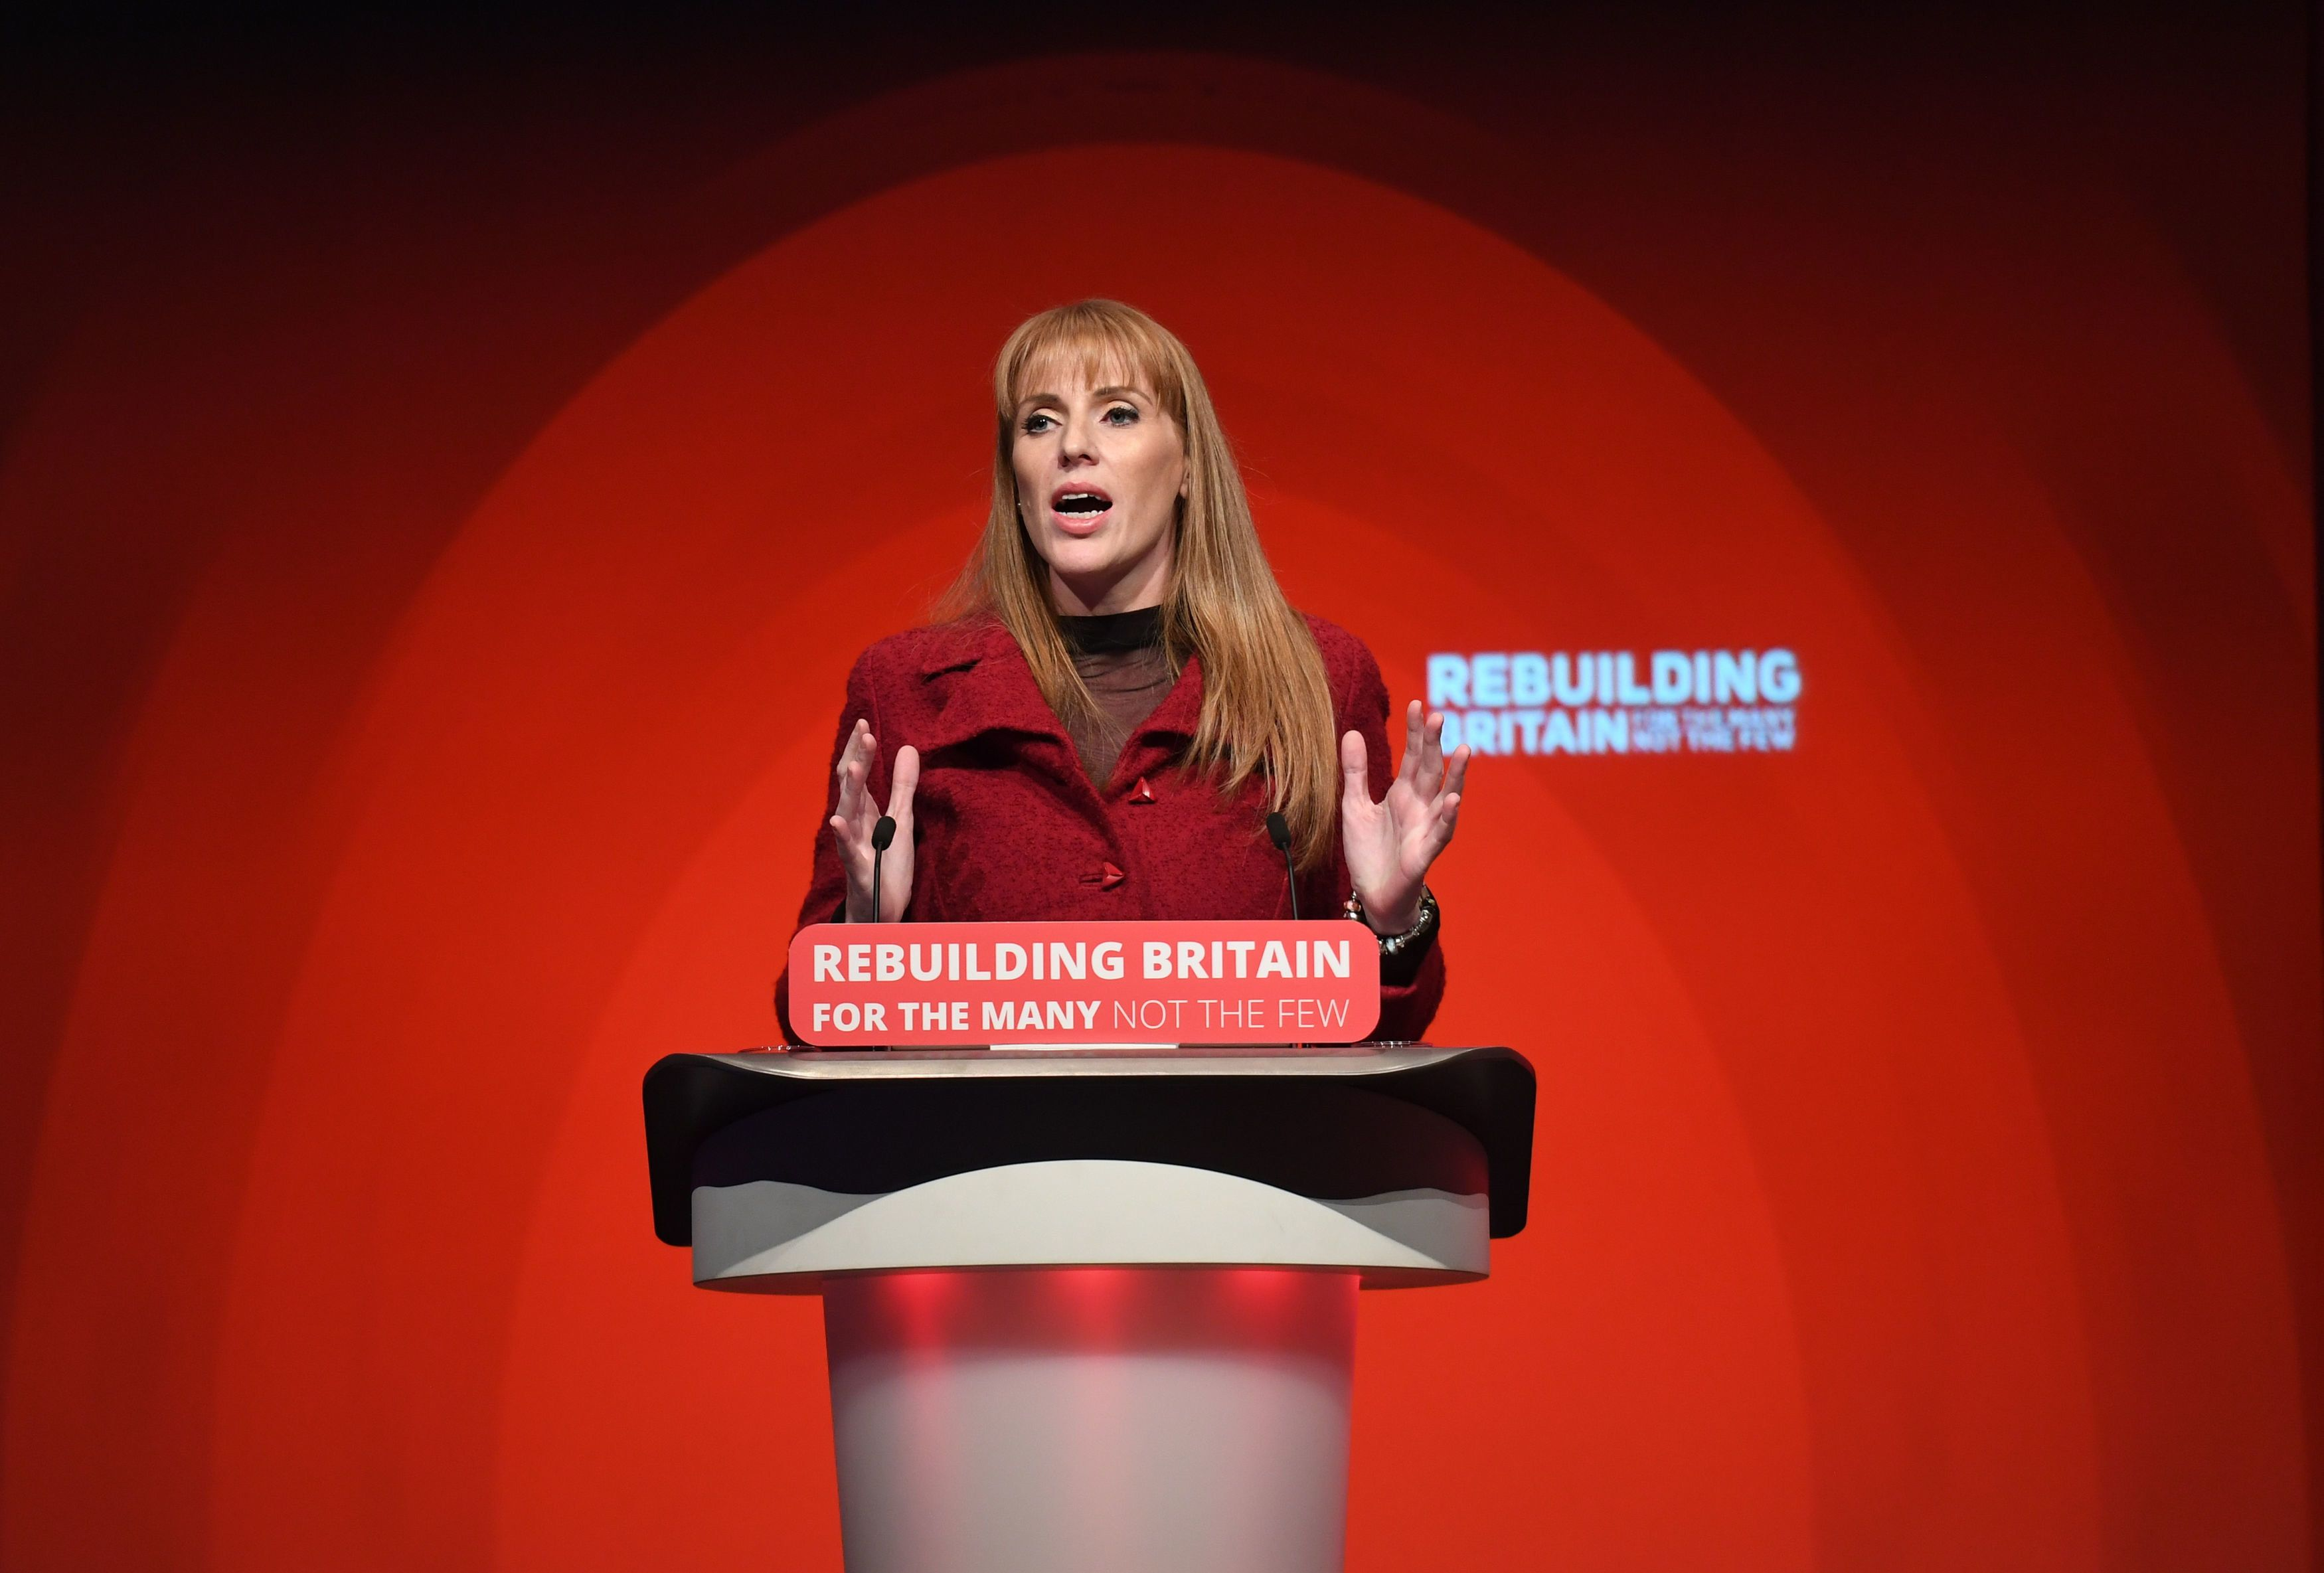 Labour Signals It Will Back Major Expansion Of State-Funded